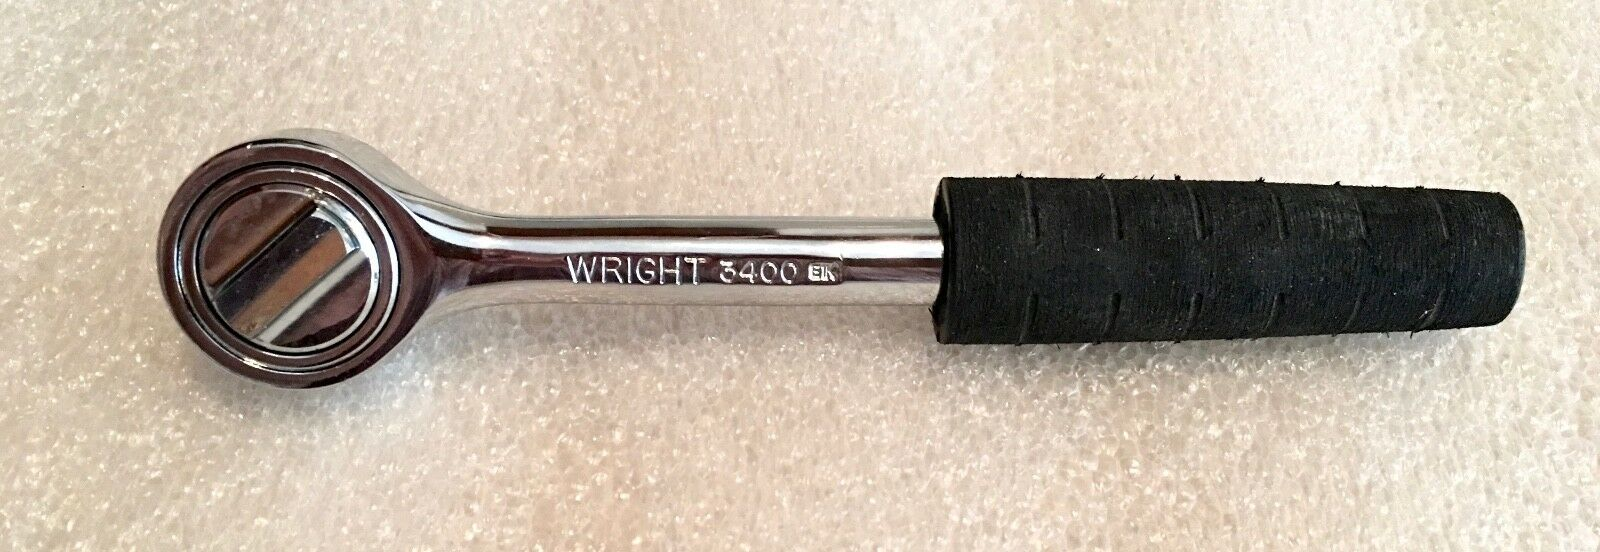 Wright Tool 3400 3 8 In. Drive Round Head Ratchet Made In USA